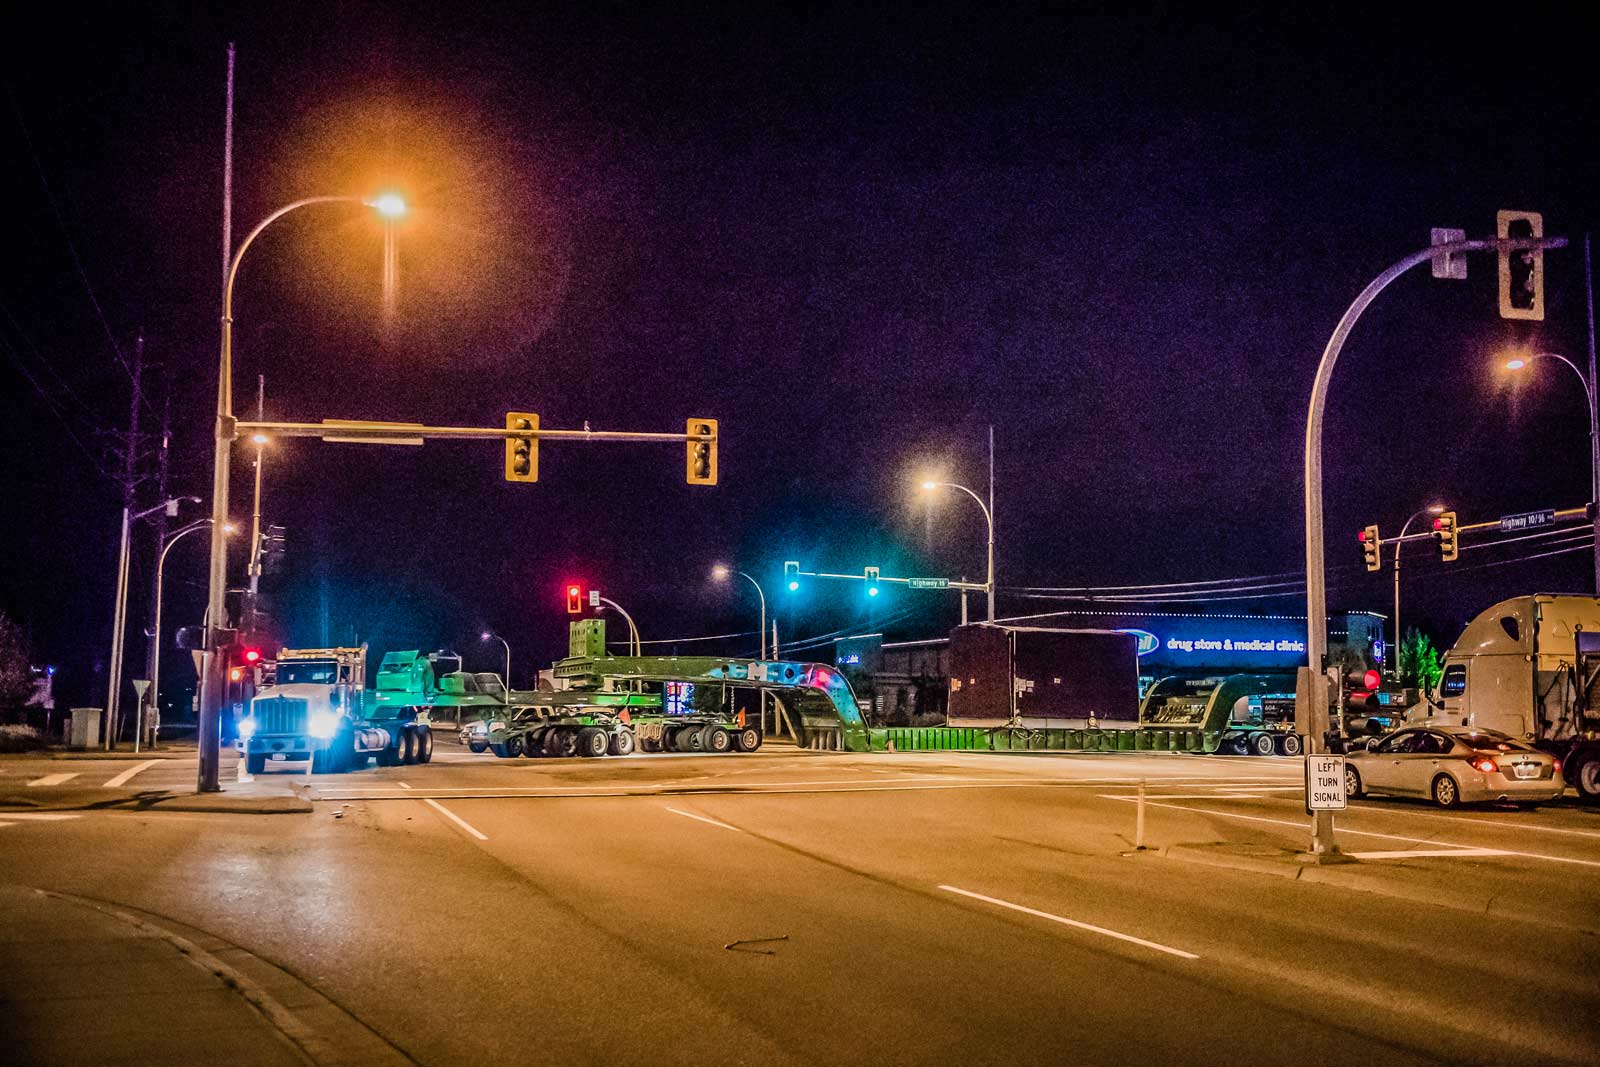 150-ton dual lane trailer carrying compressor package turning at an intersection in British Columbia at night